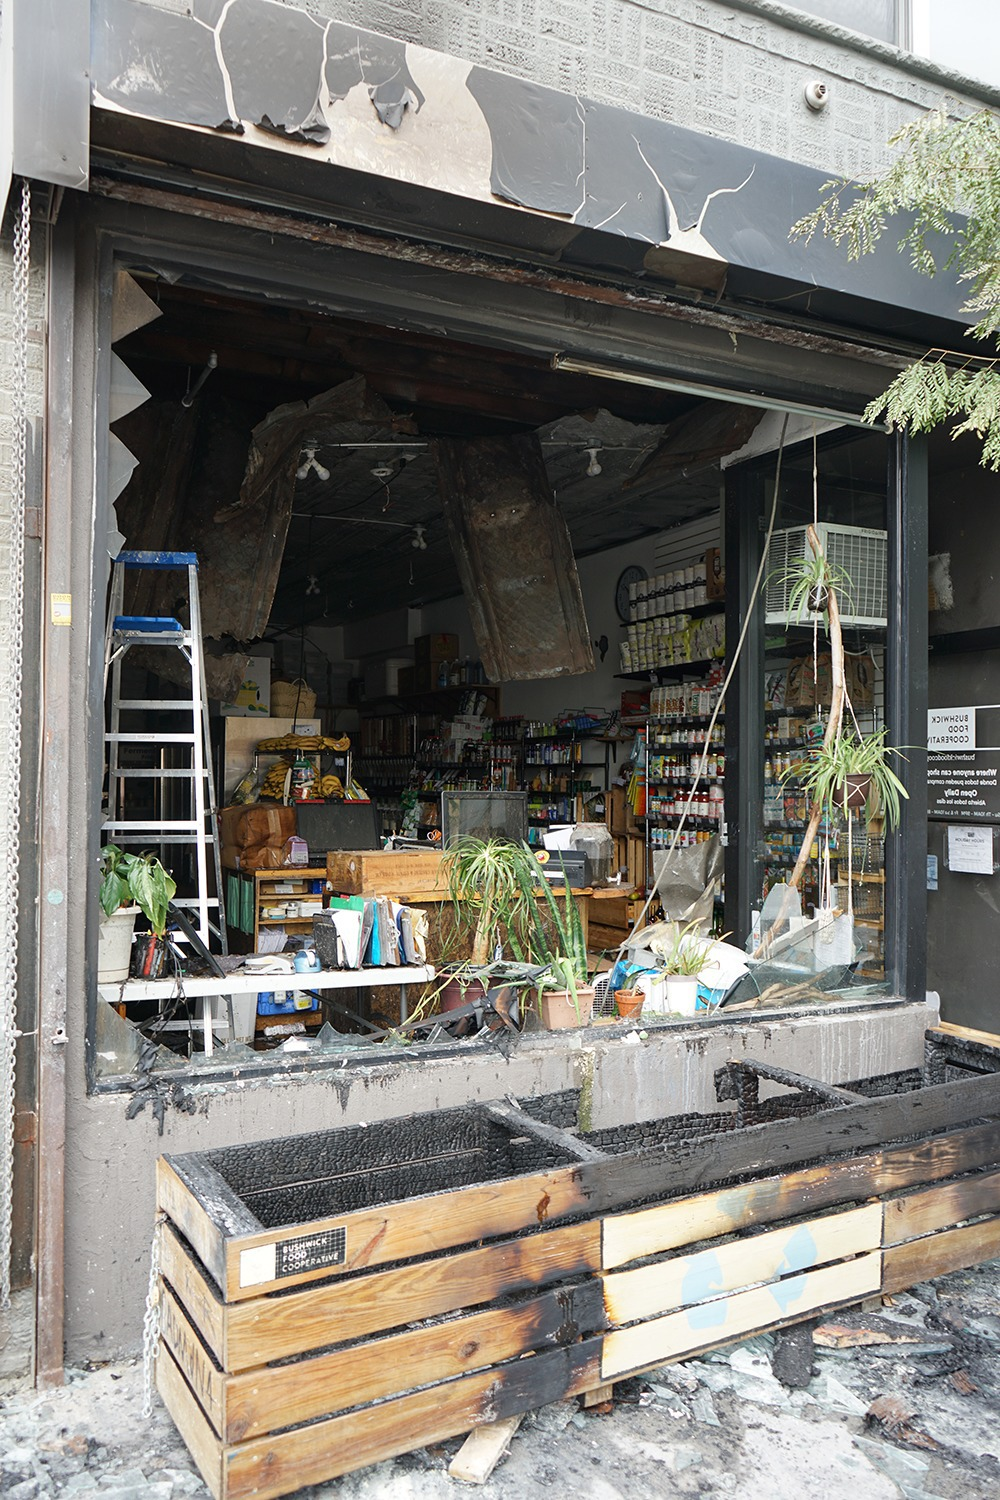 Bushwick Food Co-Op Needs Your Help to Recover From Fire Damage — News on Bushwick Daily